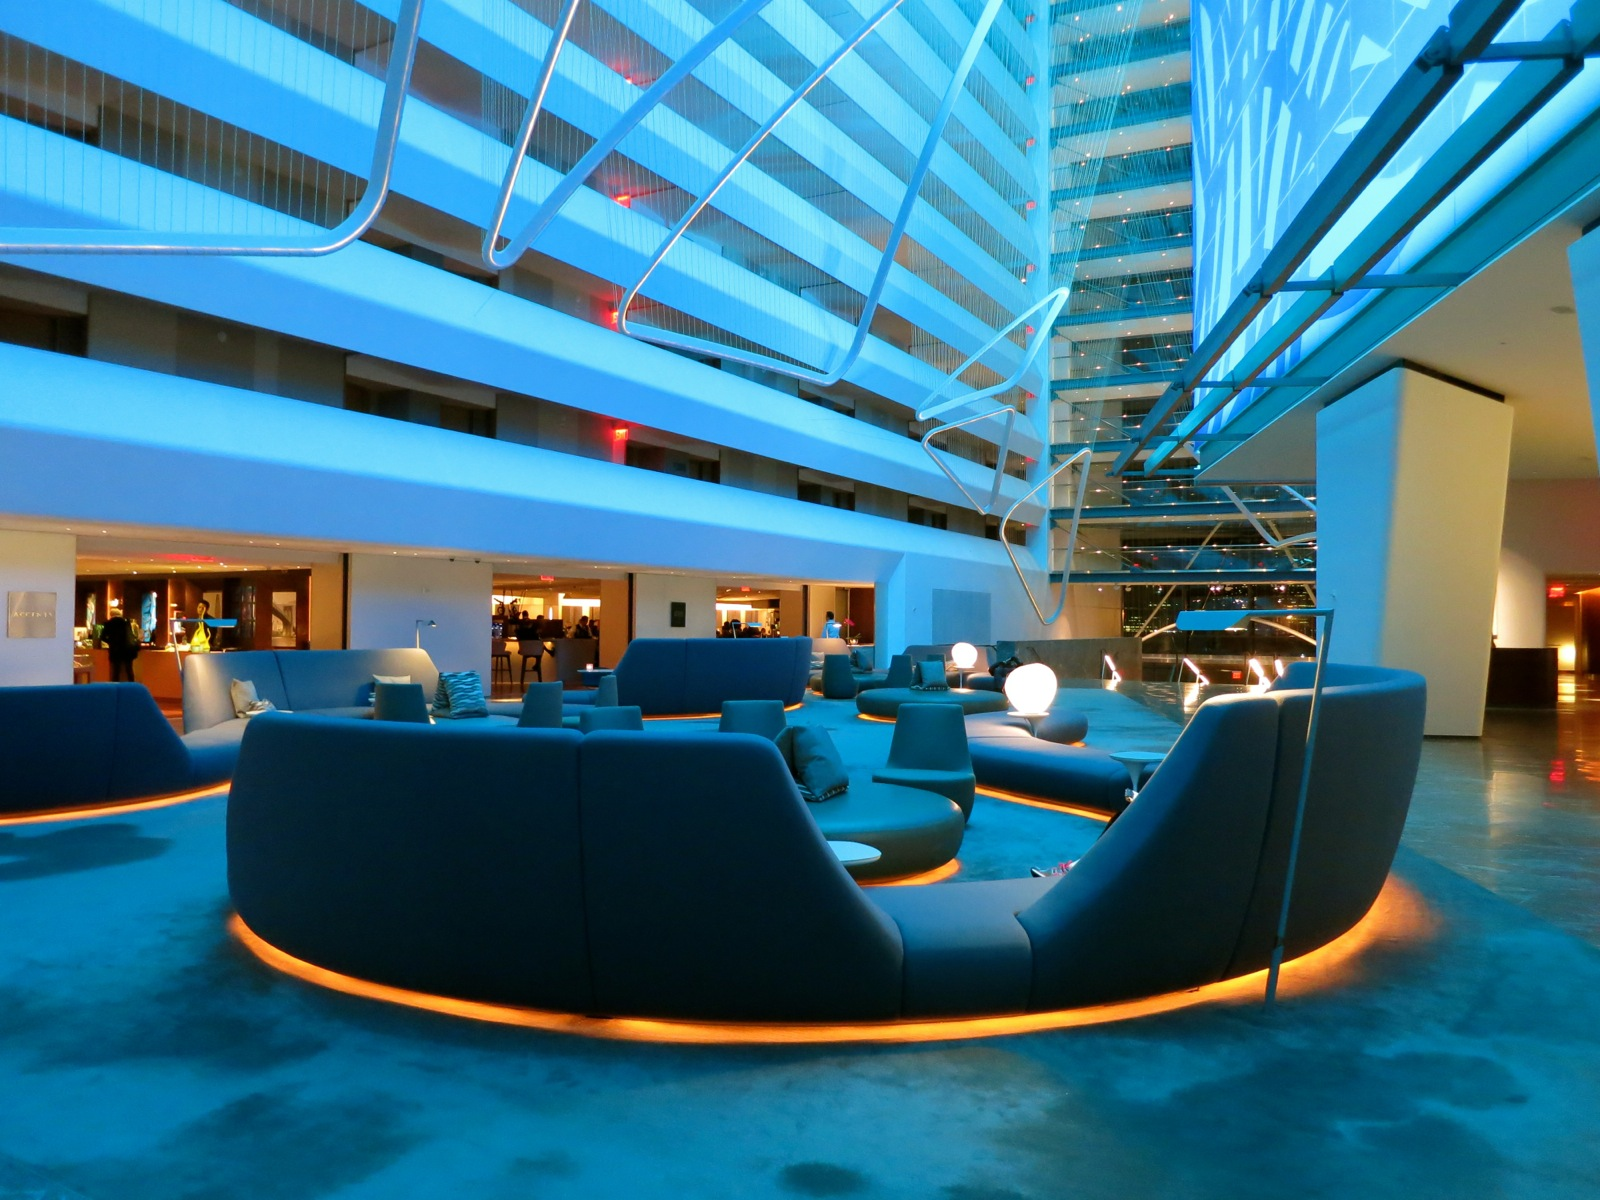 Stunning Conrad Hotel Nyc Lobby In Teal Light With Cool Designs